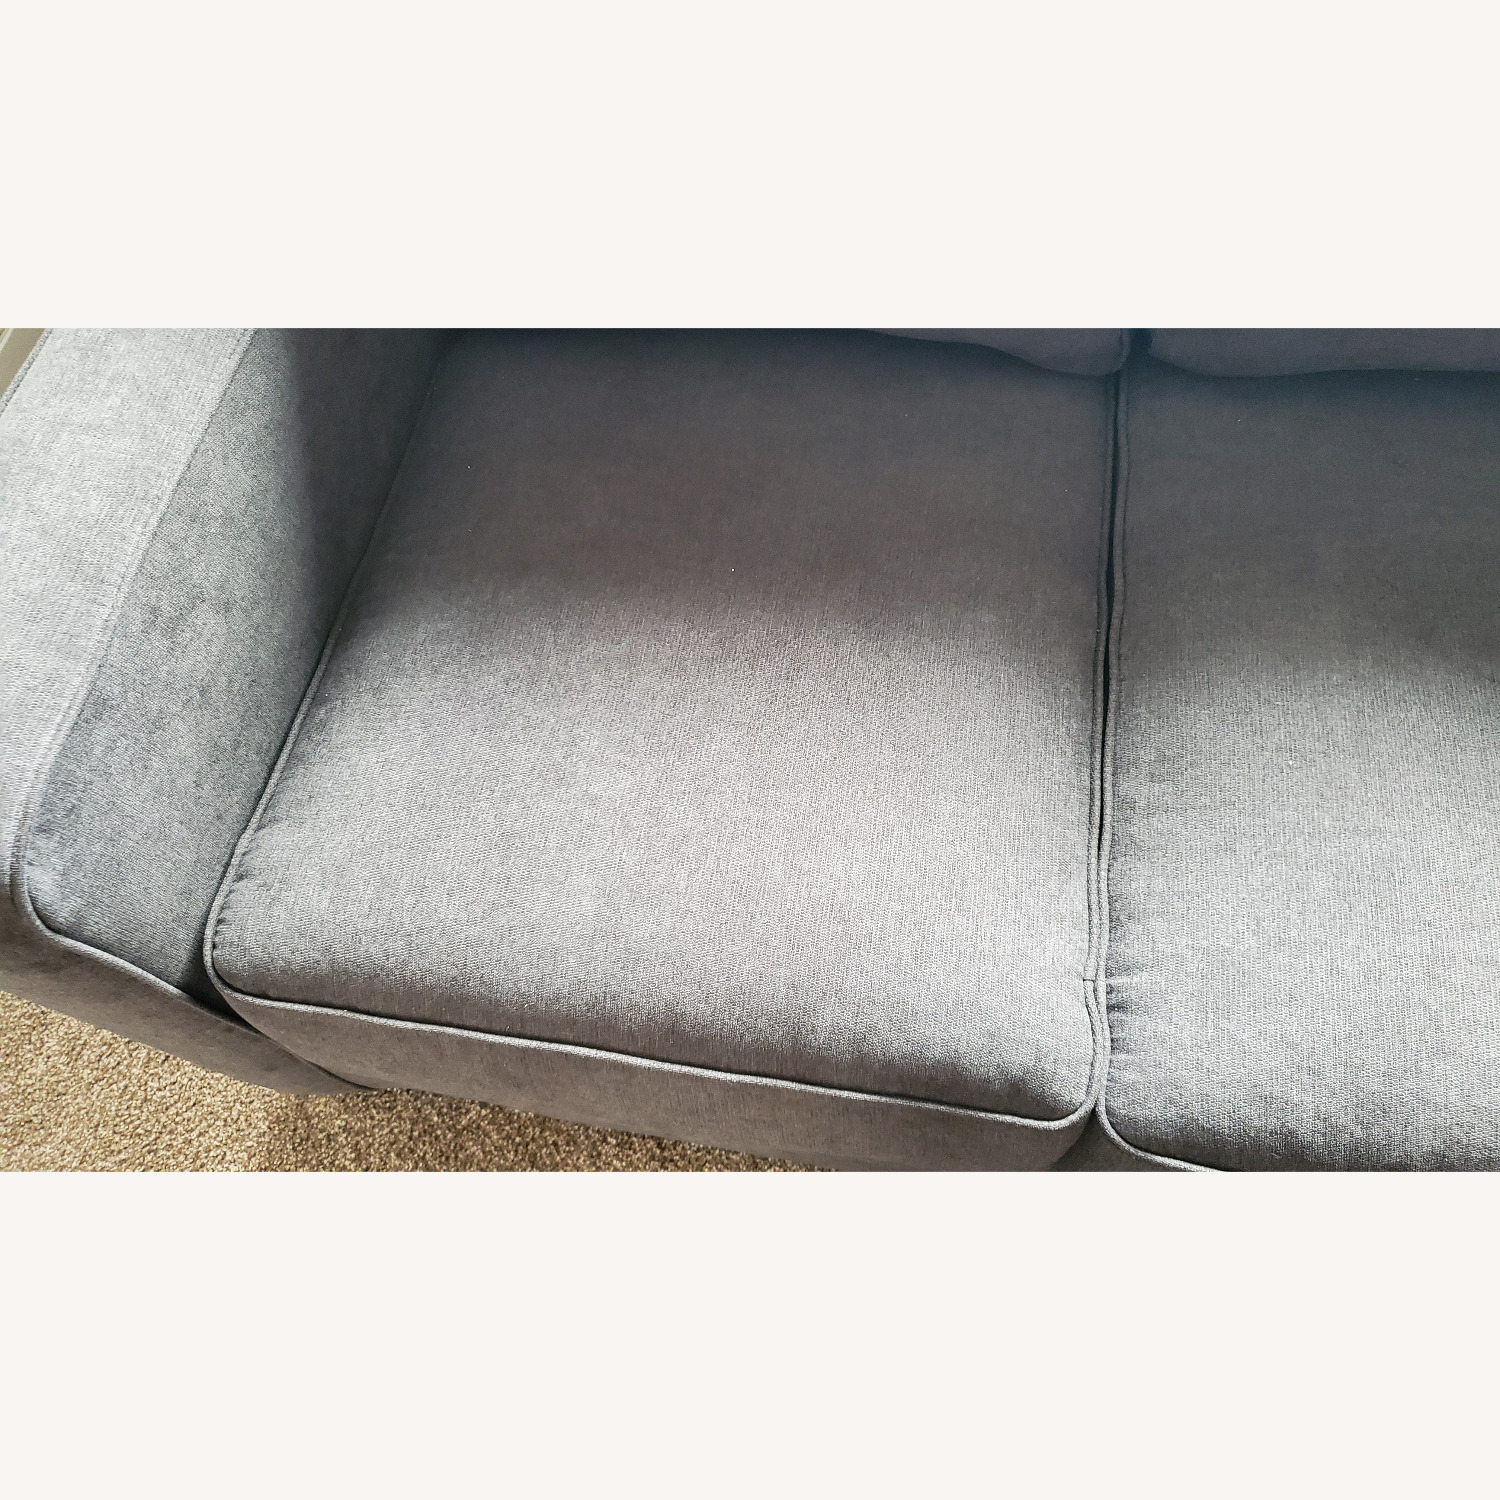 Ashley Furniture ZEB Sleeper Sofa - image-14